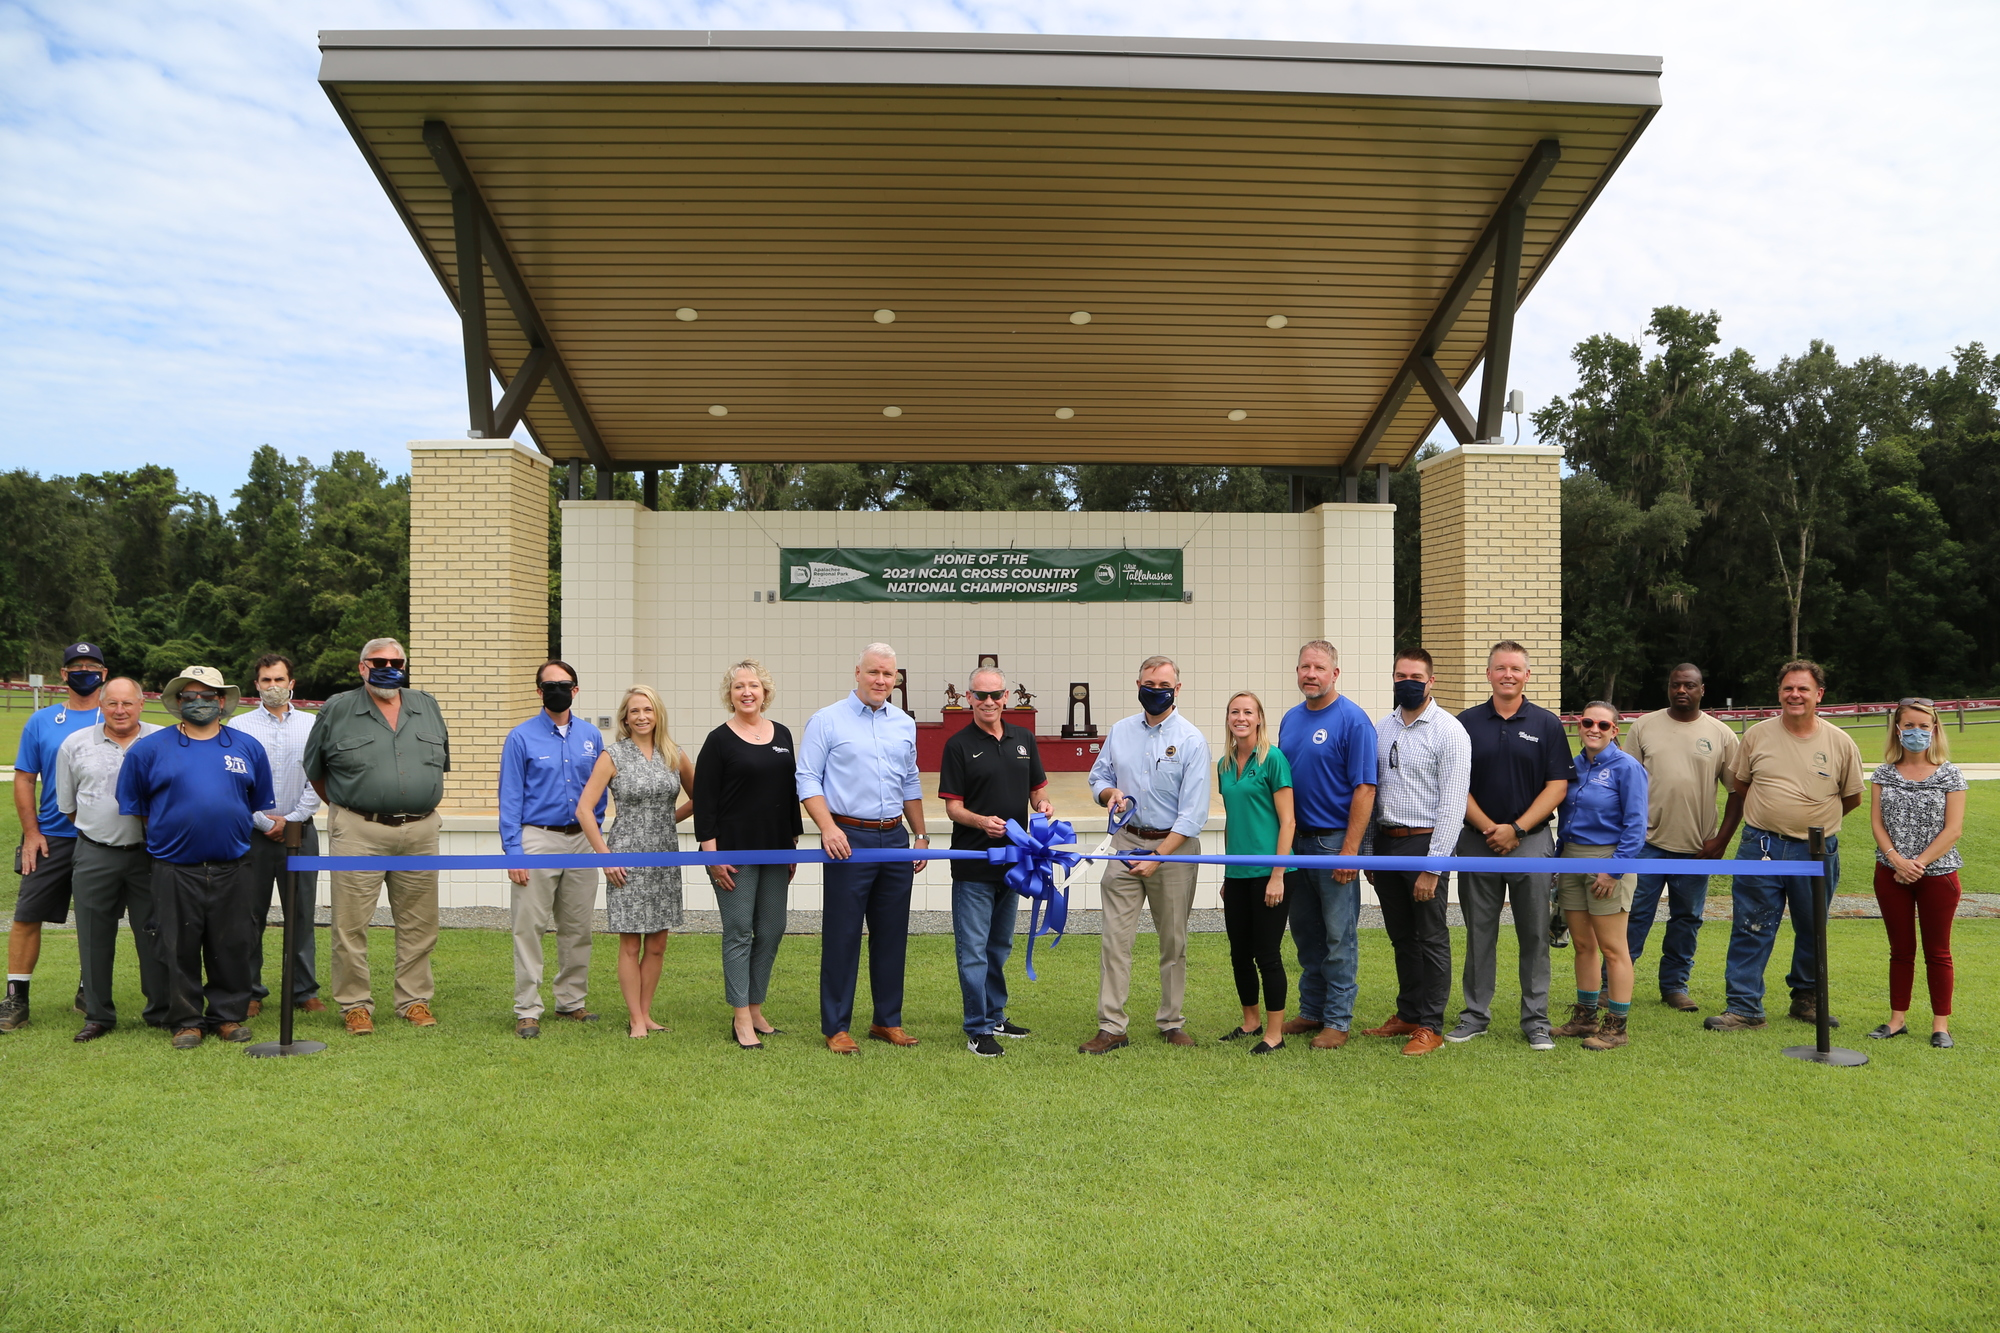 County and community partners cut the ribbon unveiling improvements to Apalachee Regional Park